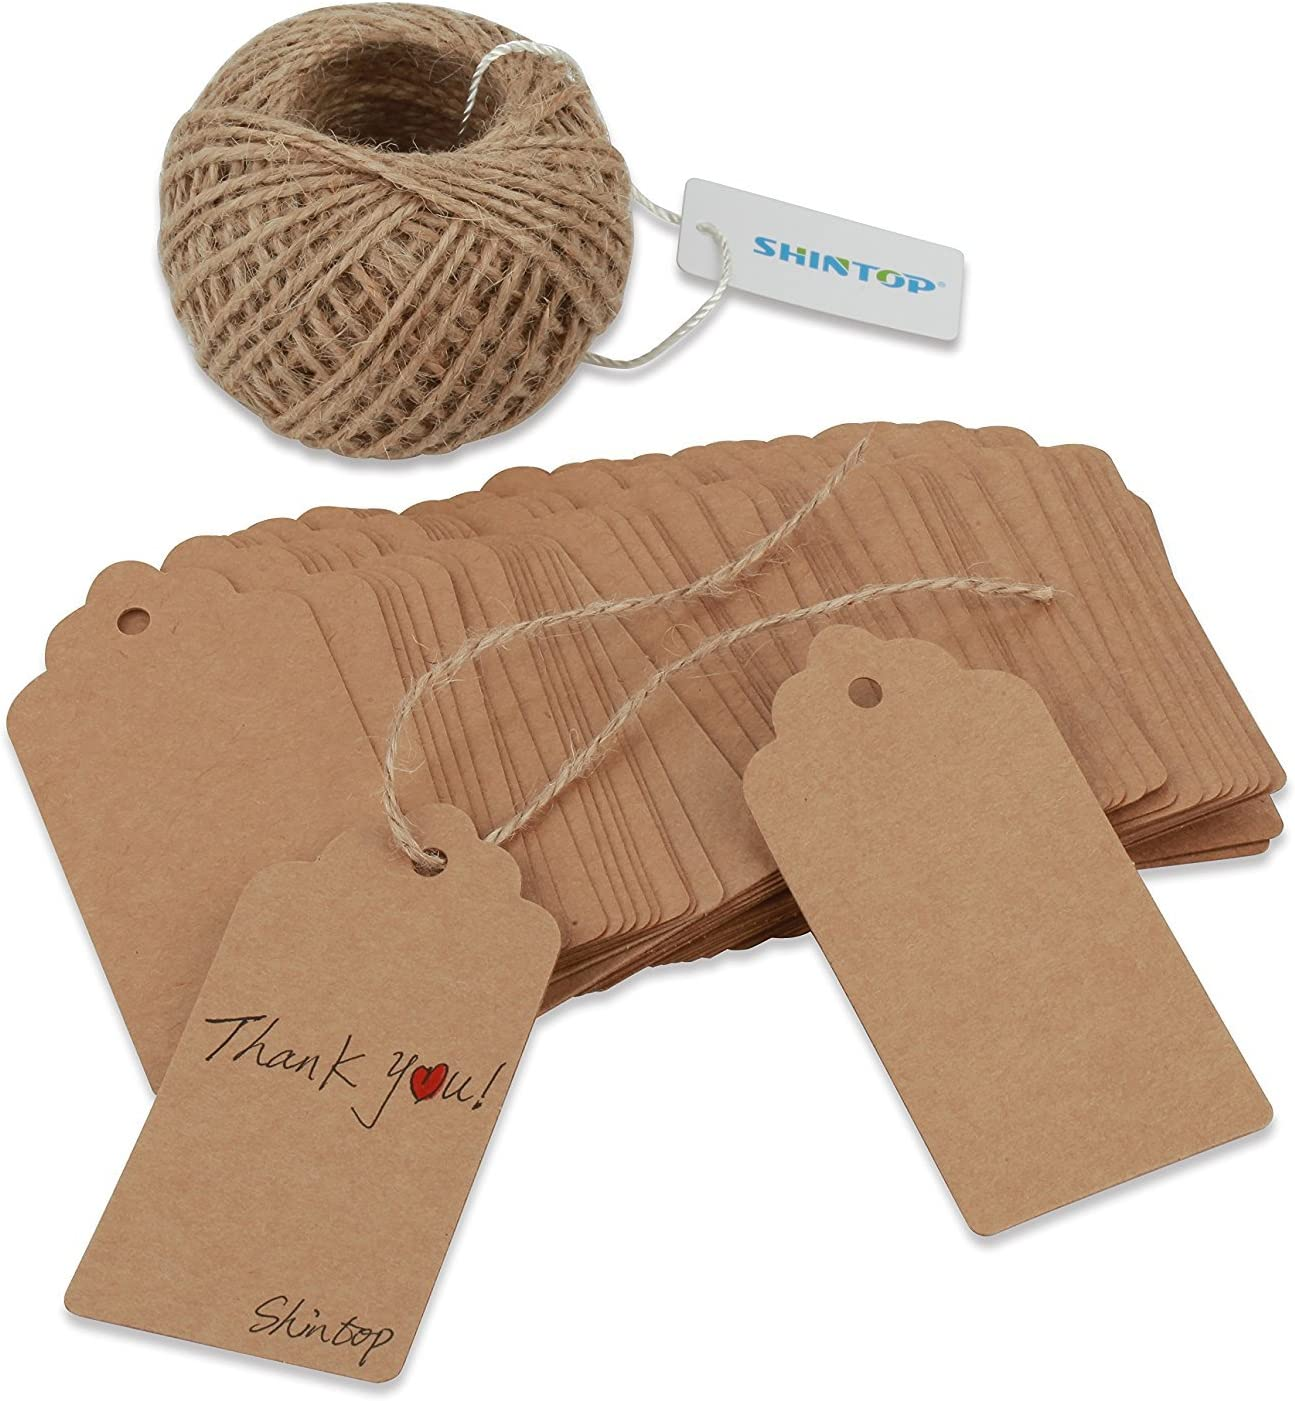 New Kraft Paper Gift Cards Thank You Tags Label for Wedding Decoration LIN